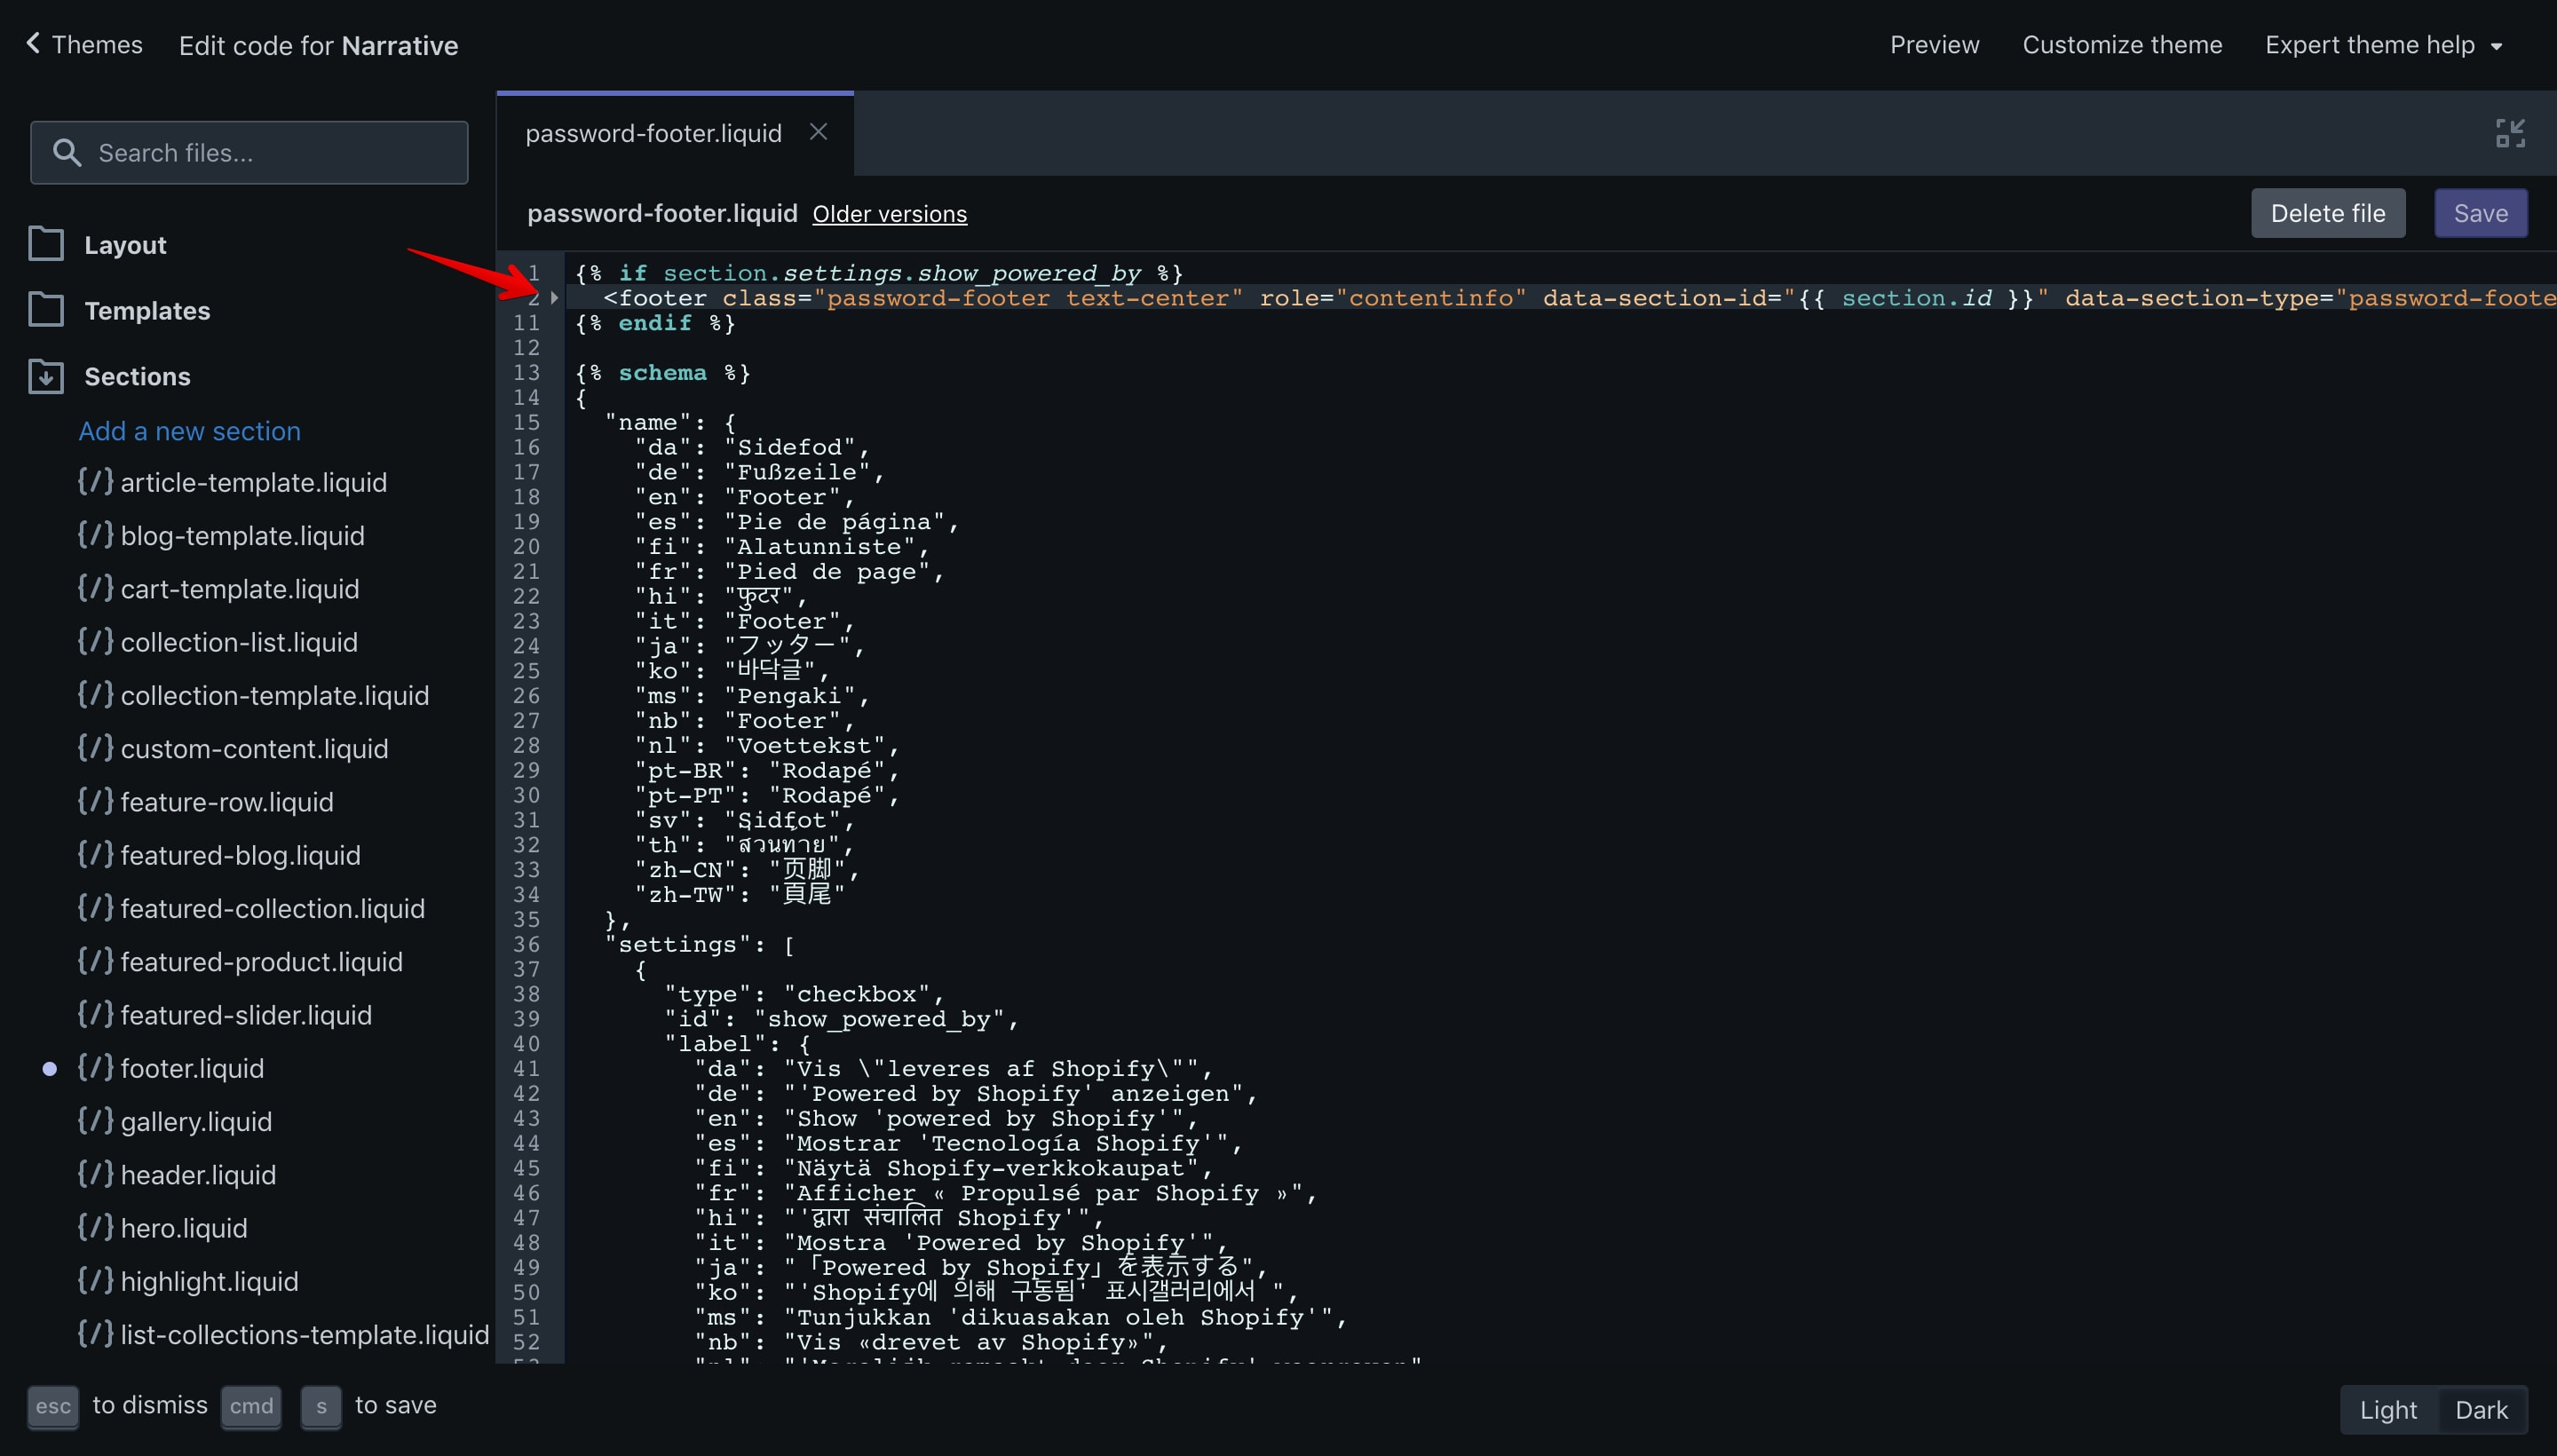 Narrative theme copyright code selection in the code editor.